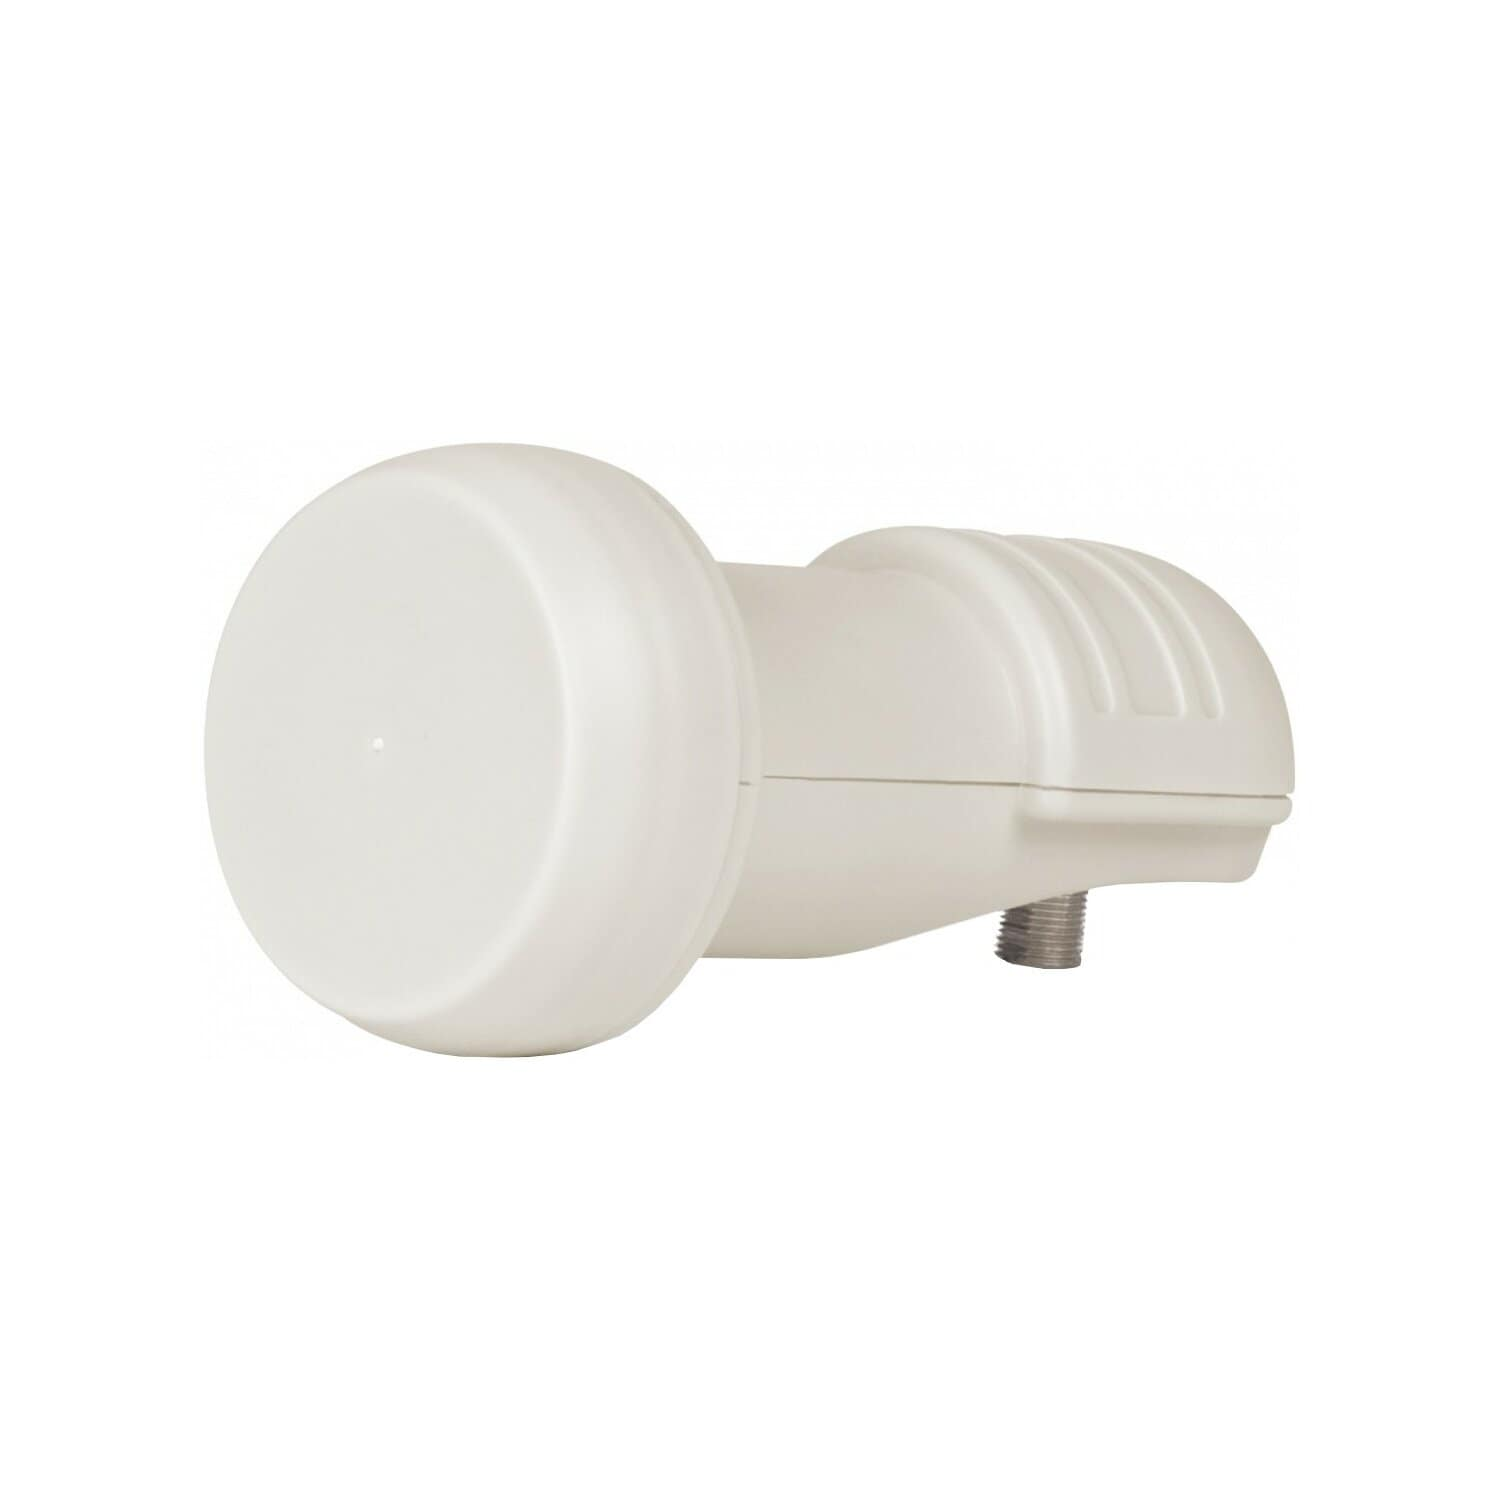 Konwerter TECHNISAT Universal Single-LNB